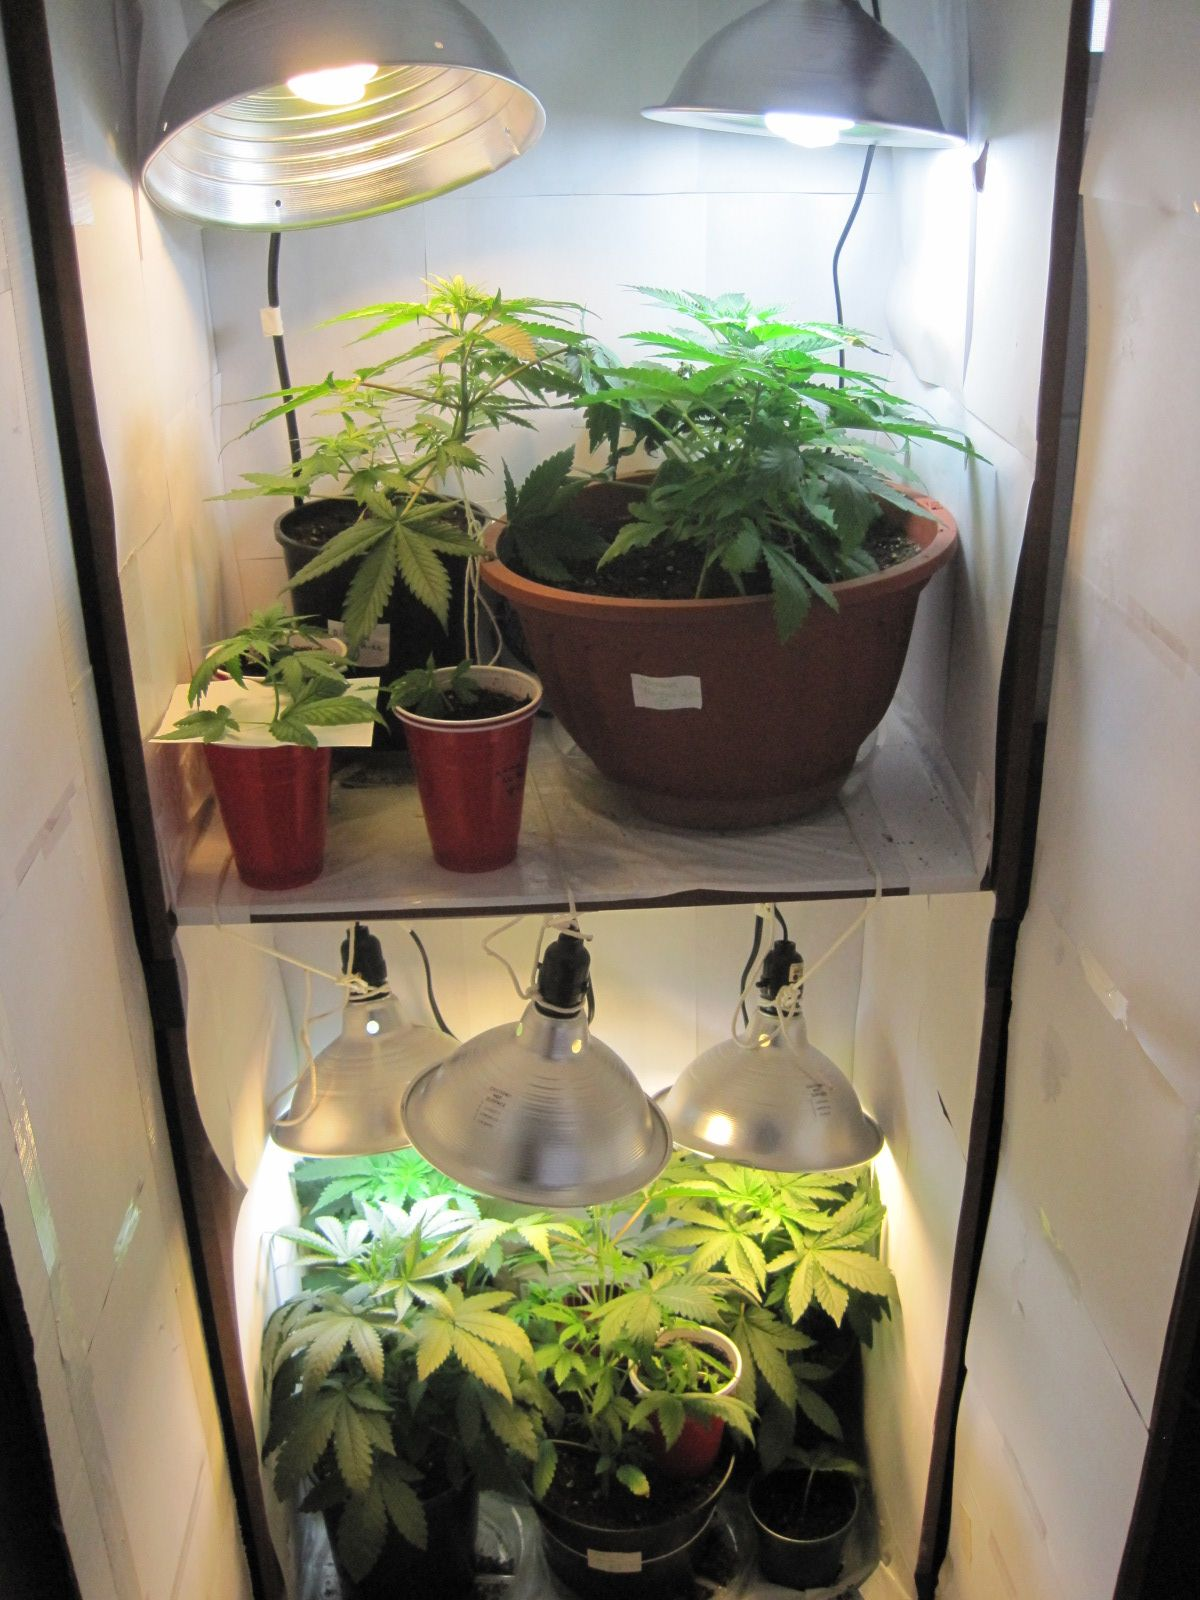 Growing A Garden Indoors If you want to discover more about indoor growing double click now if you want to discover more about indoor growing double click now workwithnaturefo